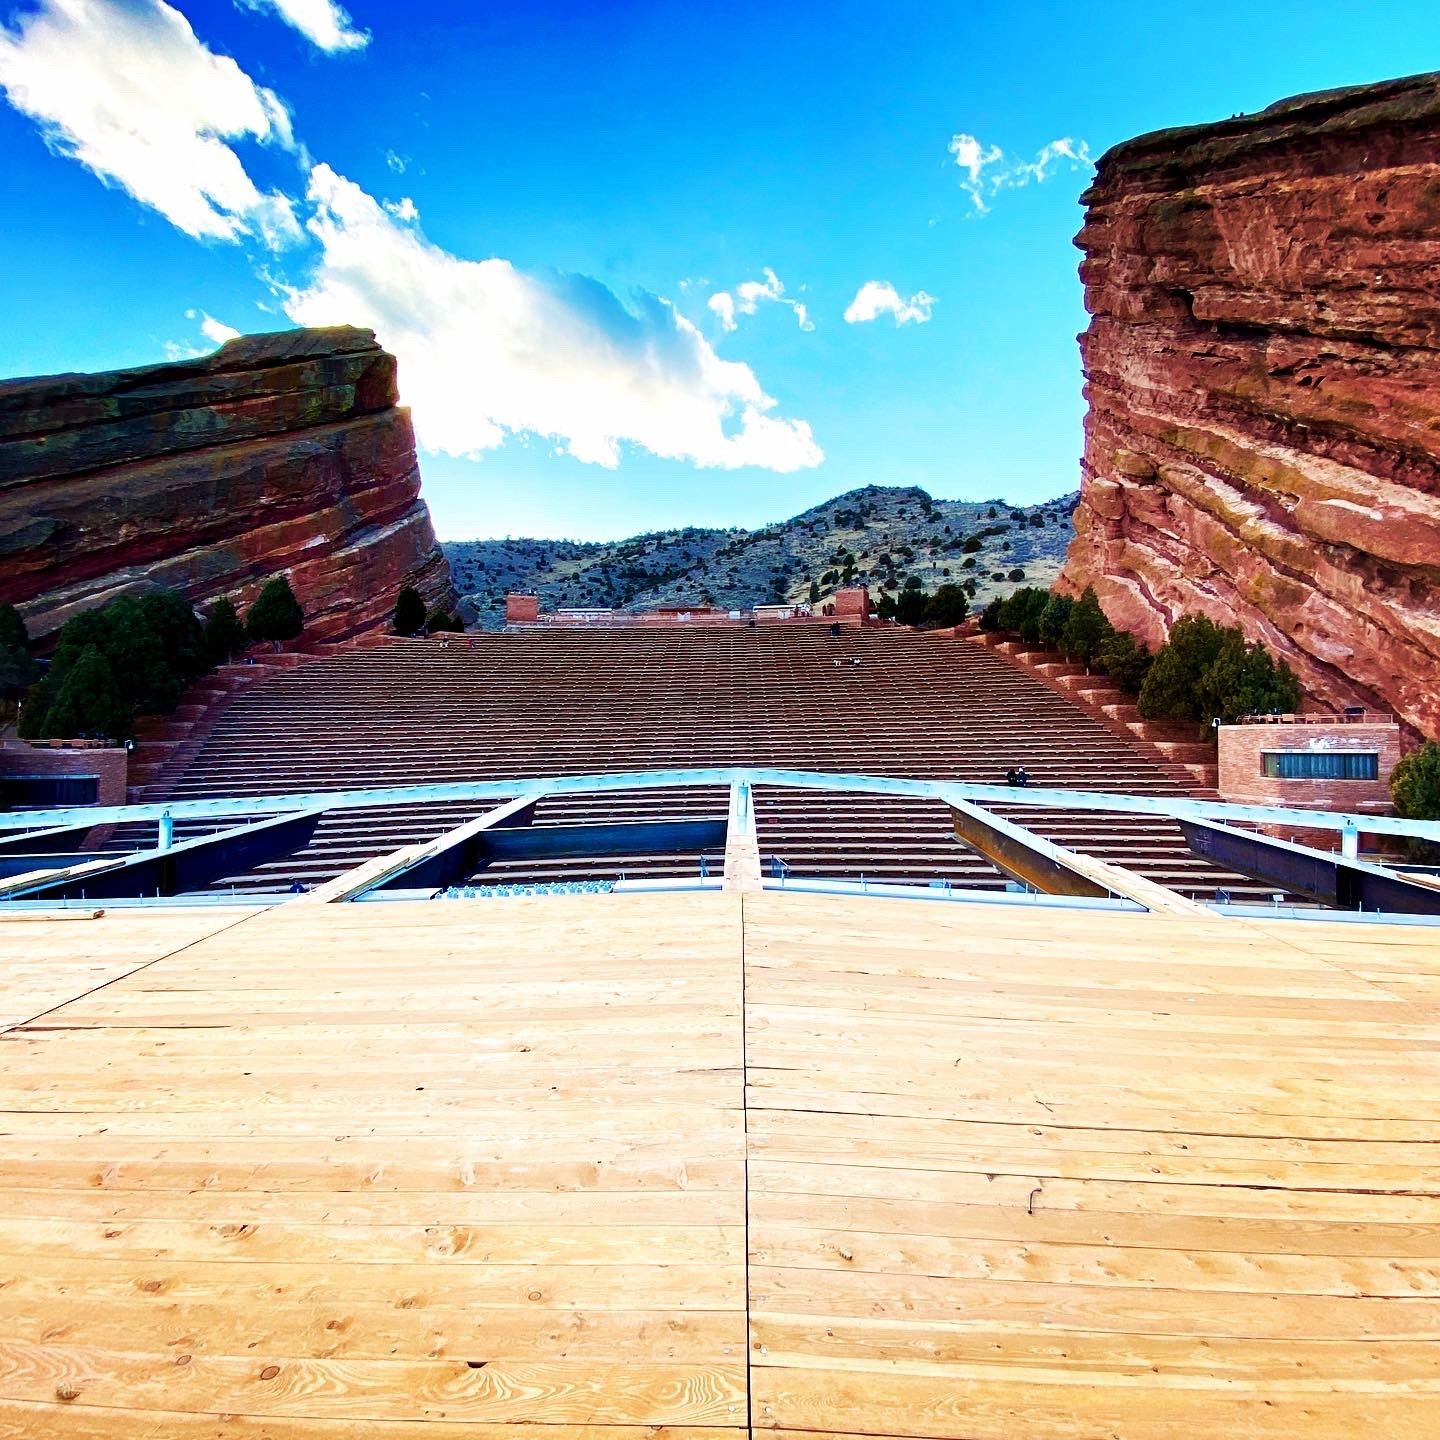 Looking out onto the Red Rocks Amphitheatre from the new stage roof.